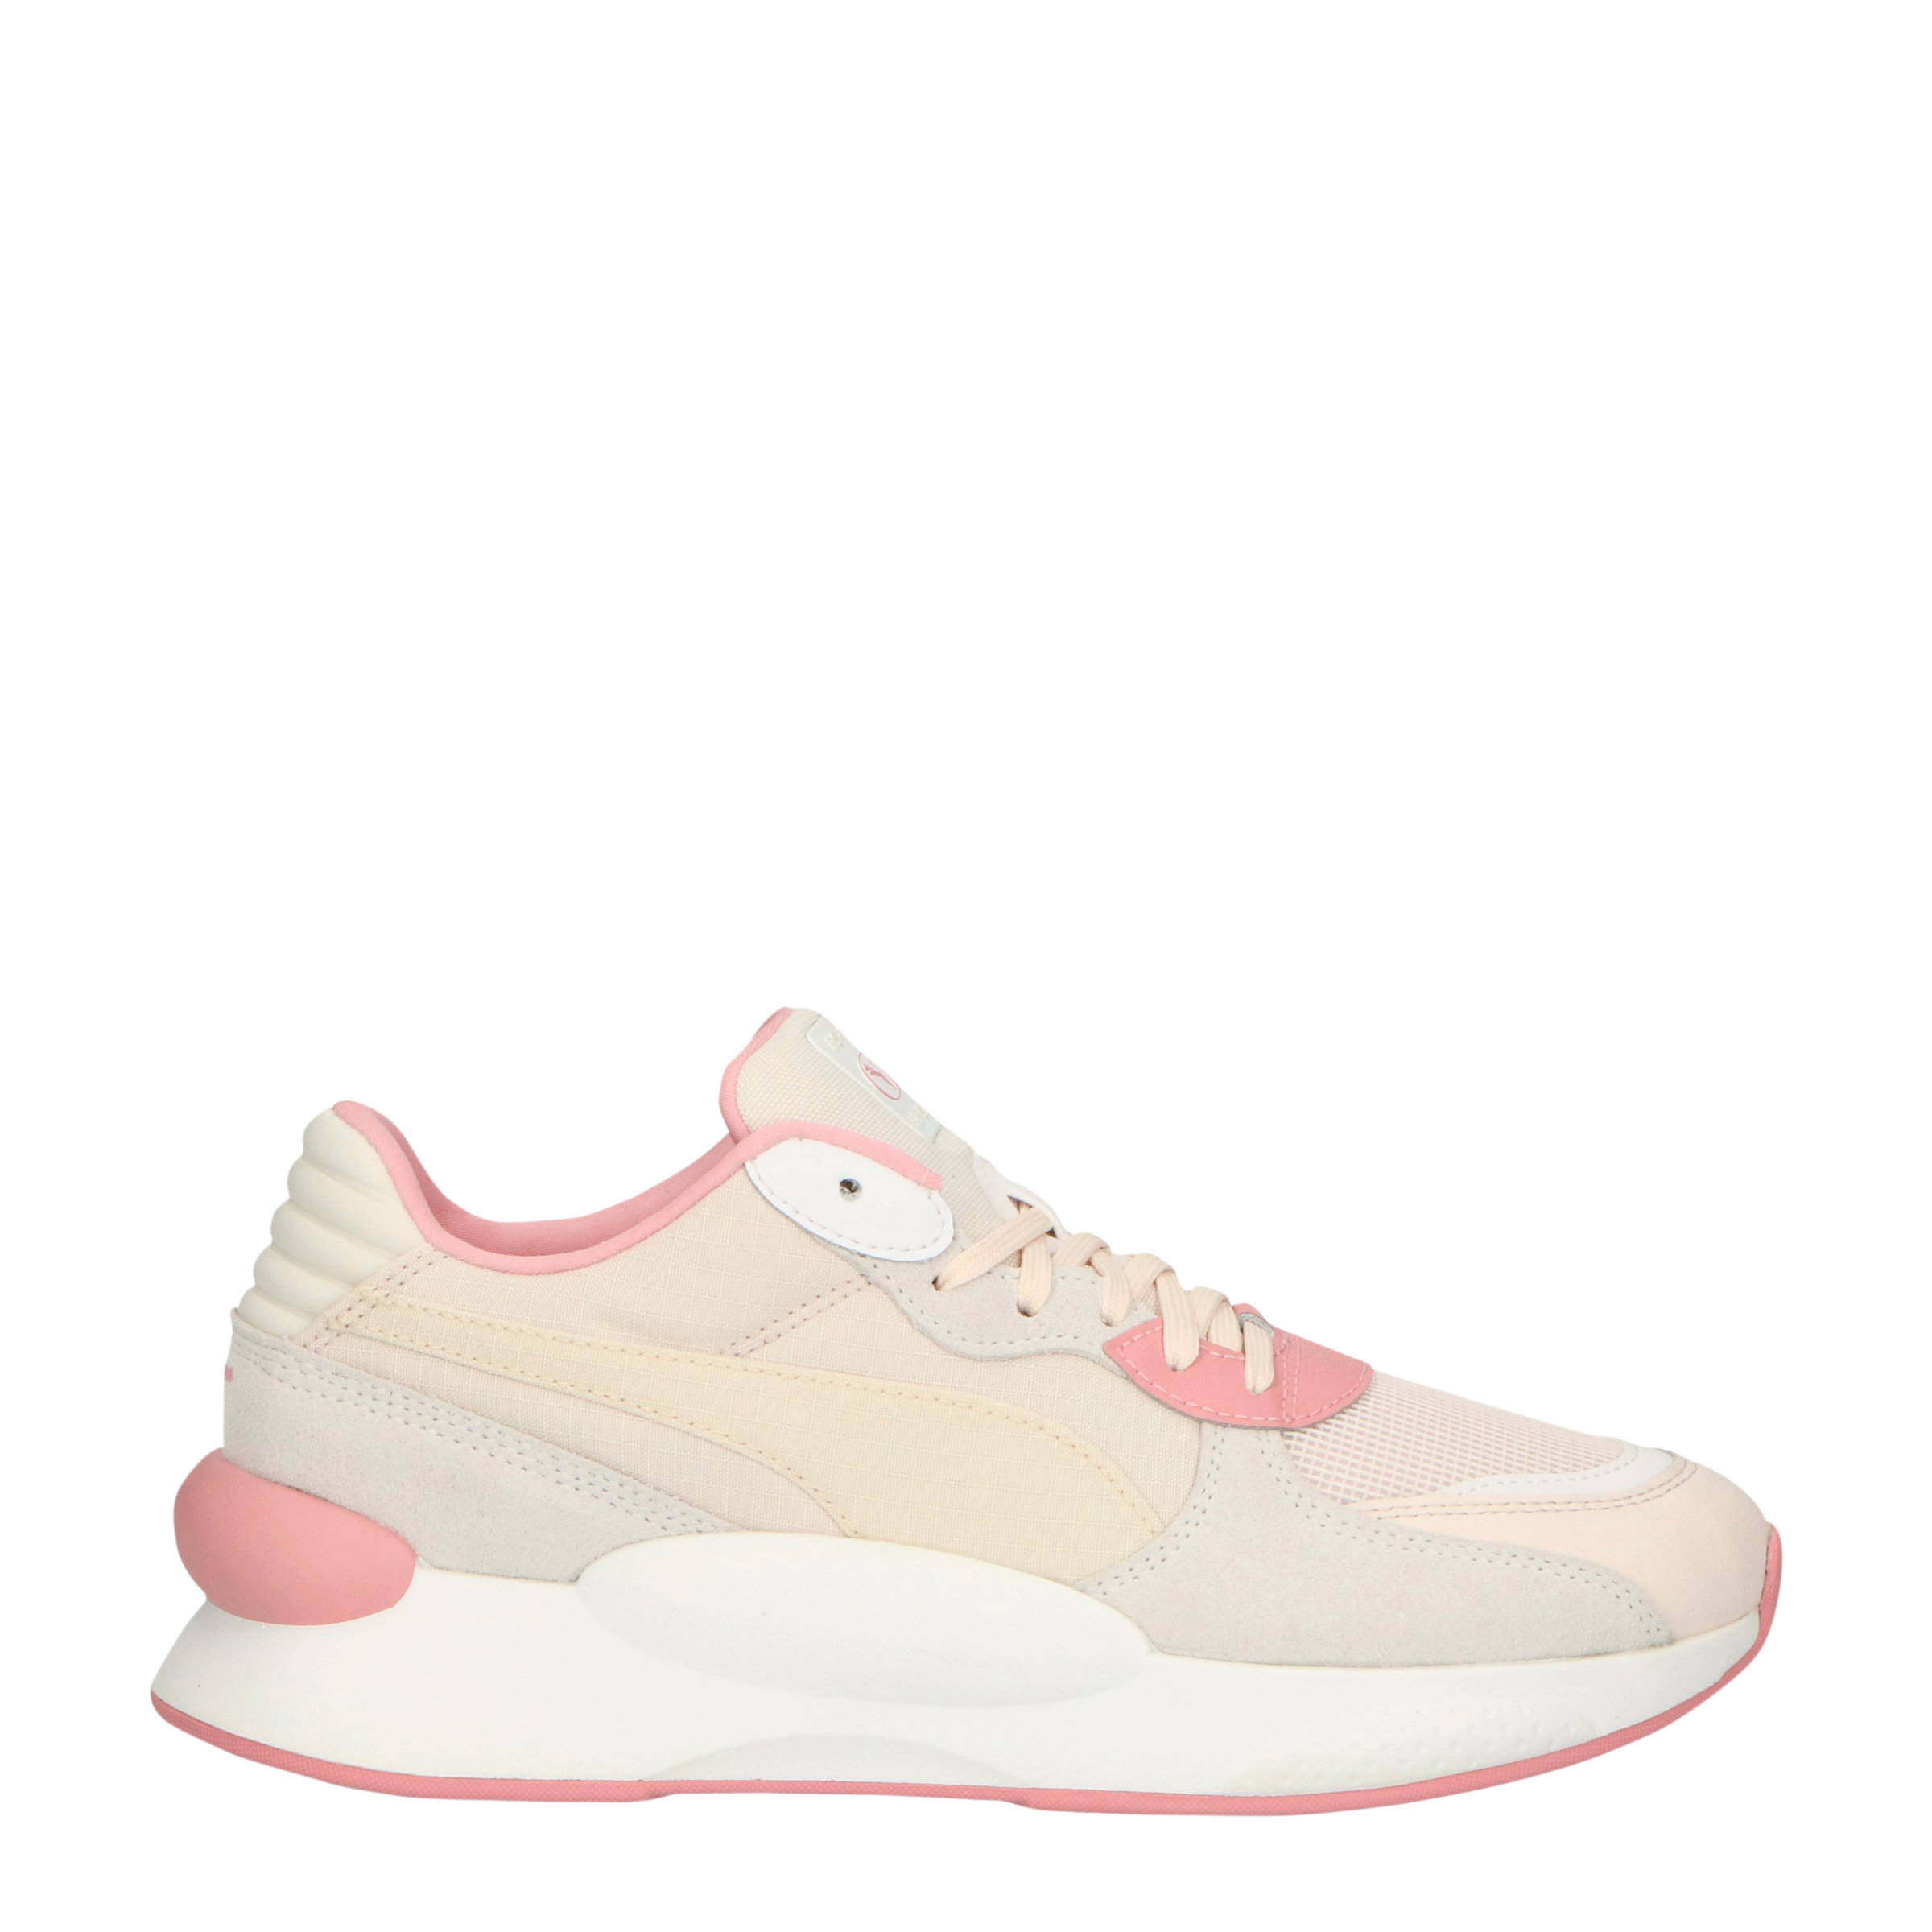 RS 9.8 Space sneakers roze/wit